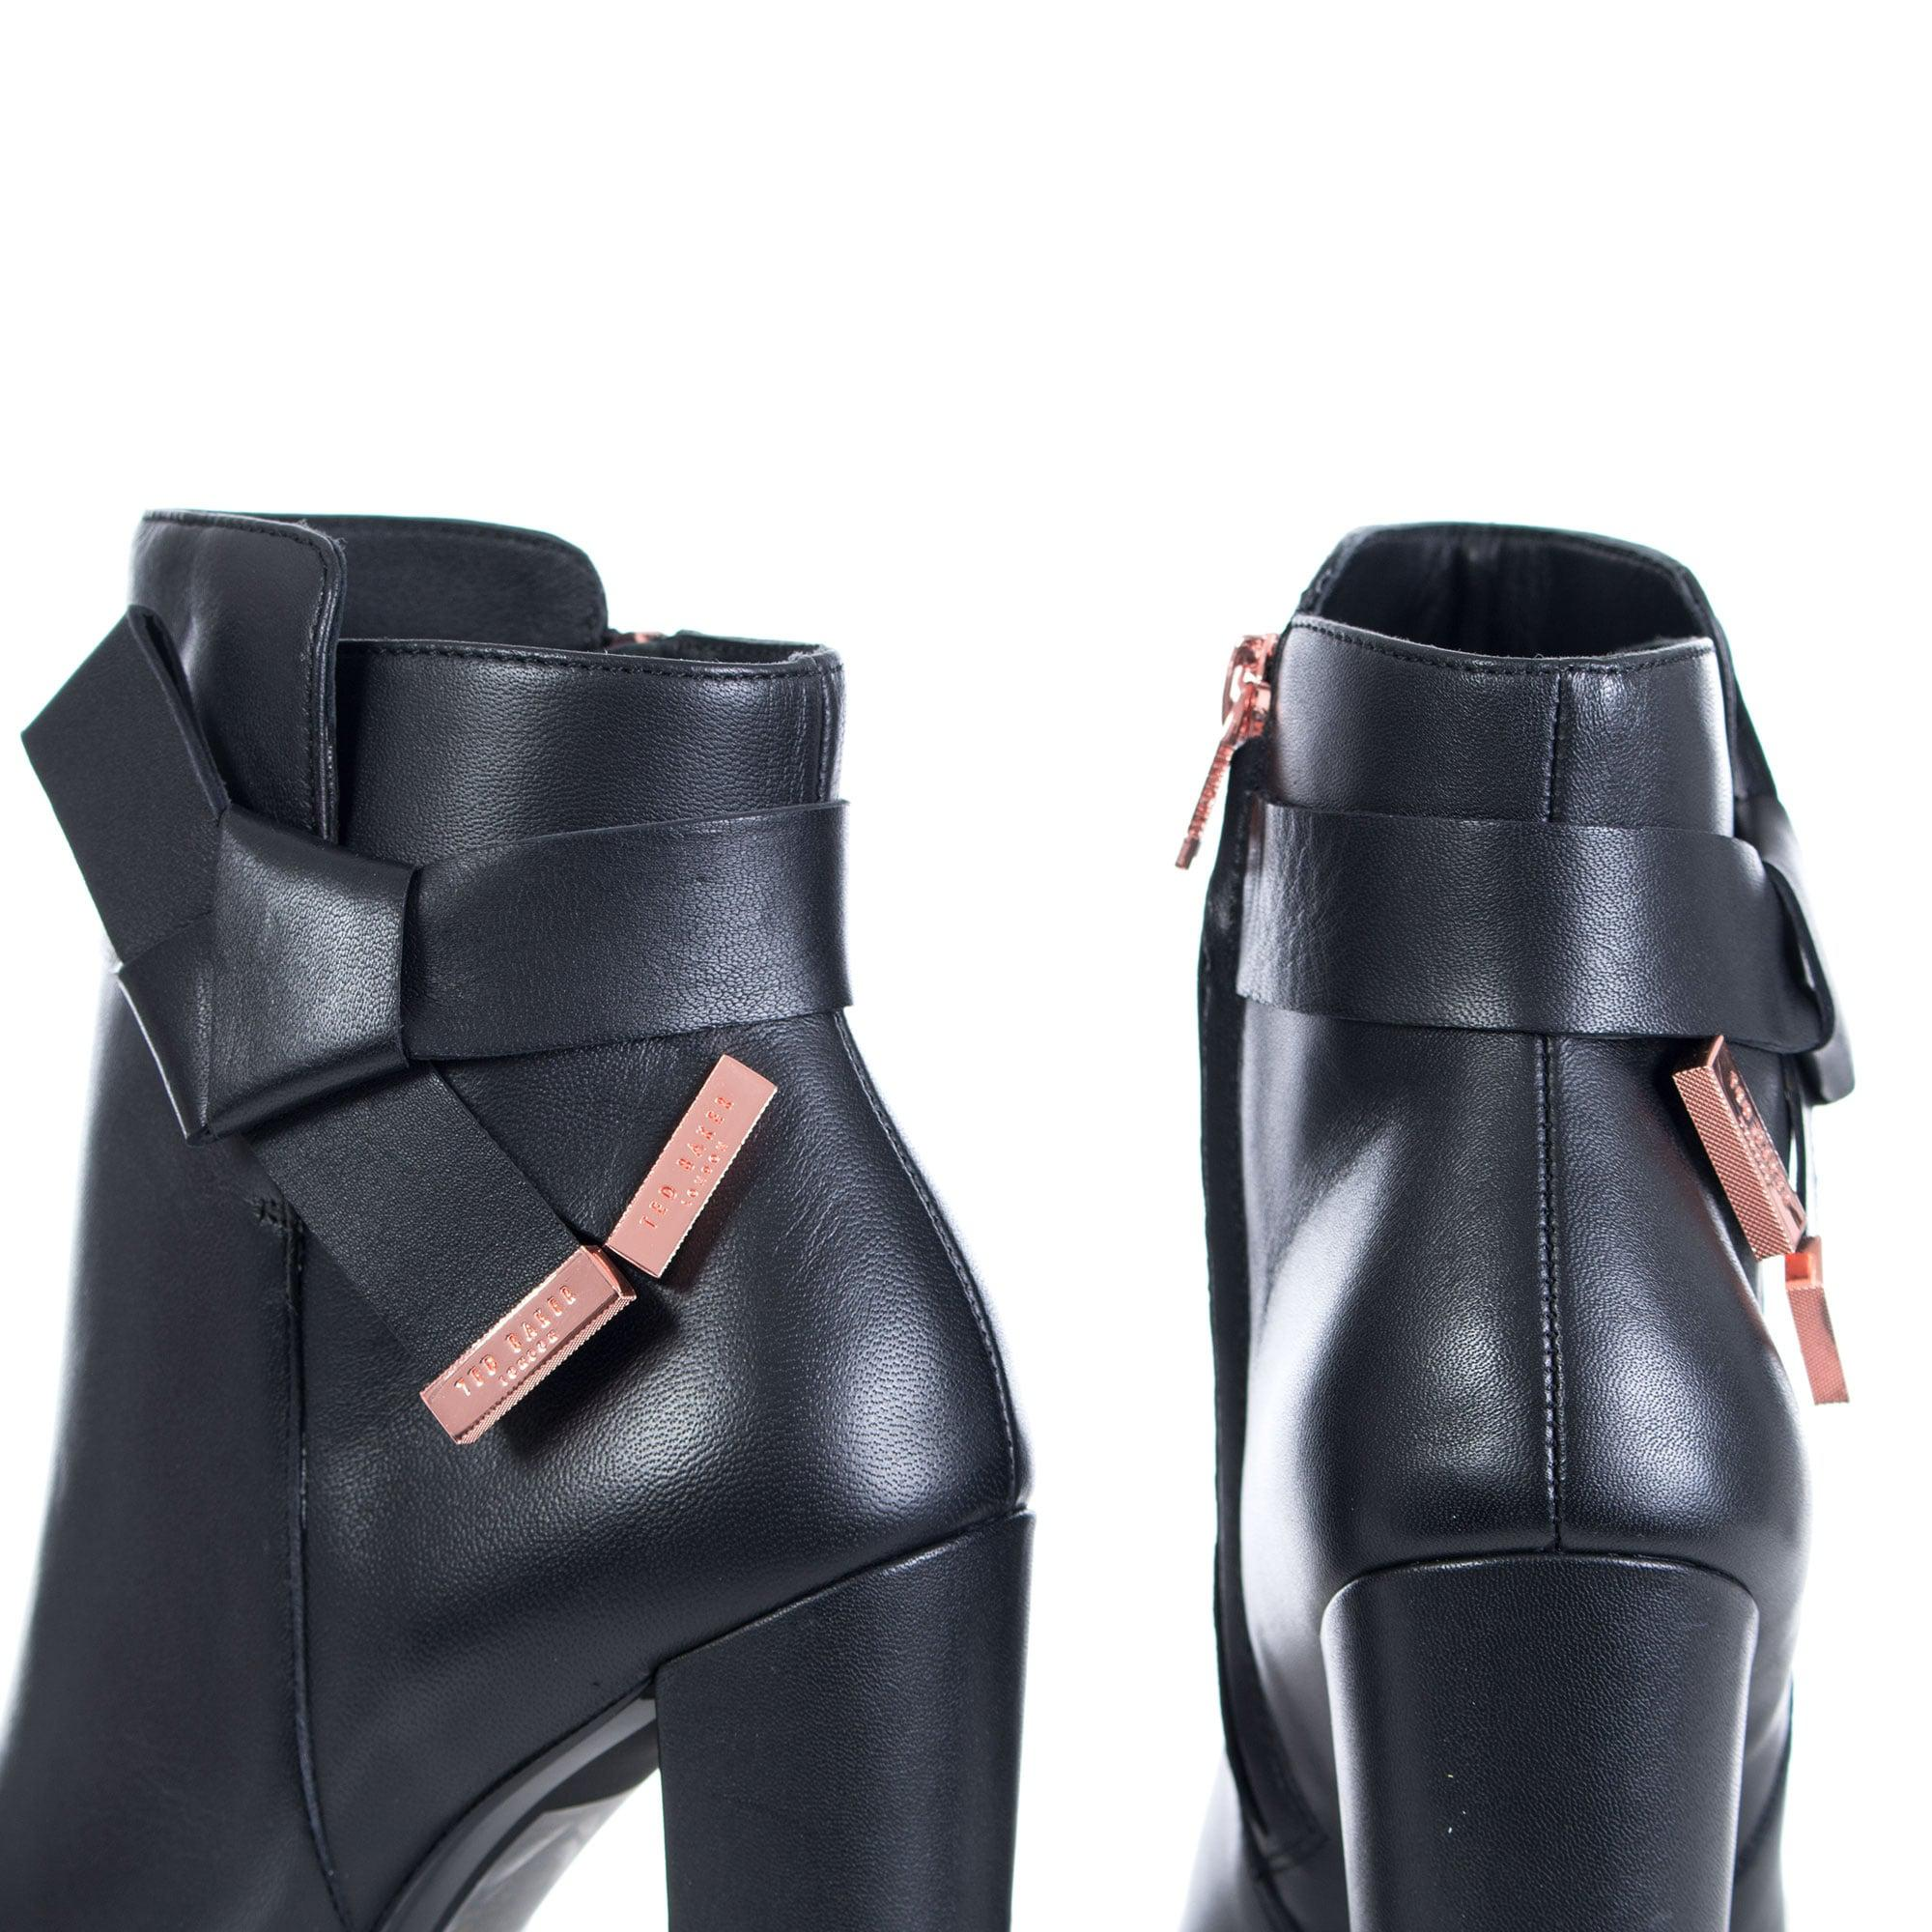 Ted Baker Leather Remadi Ankle Boots High Heel +60mm Black